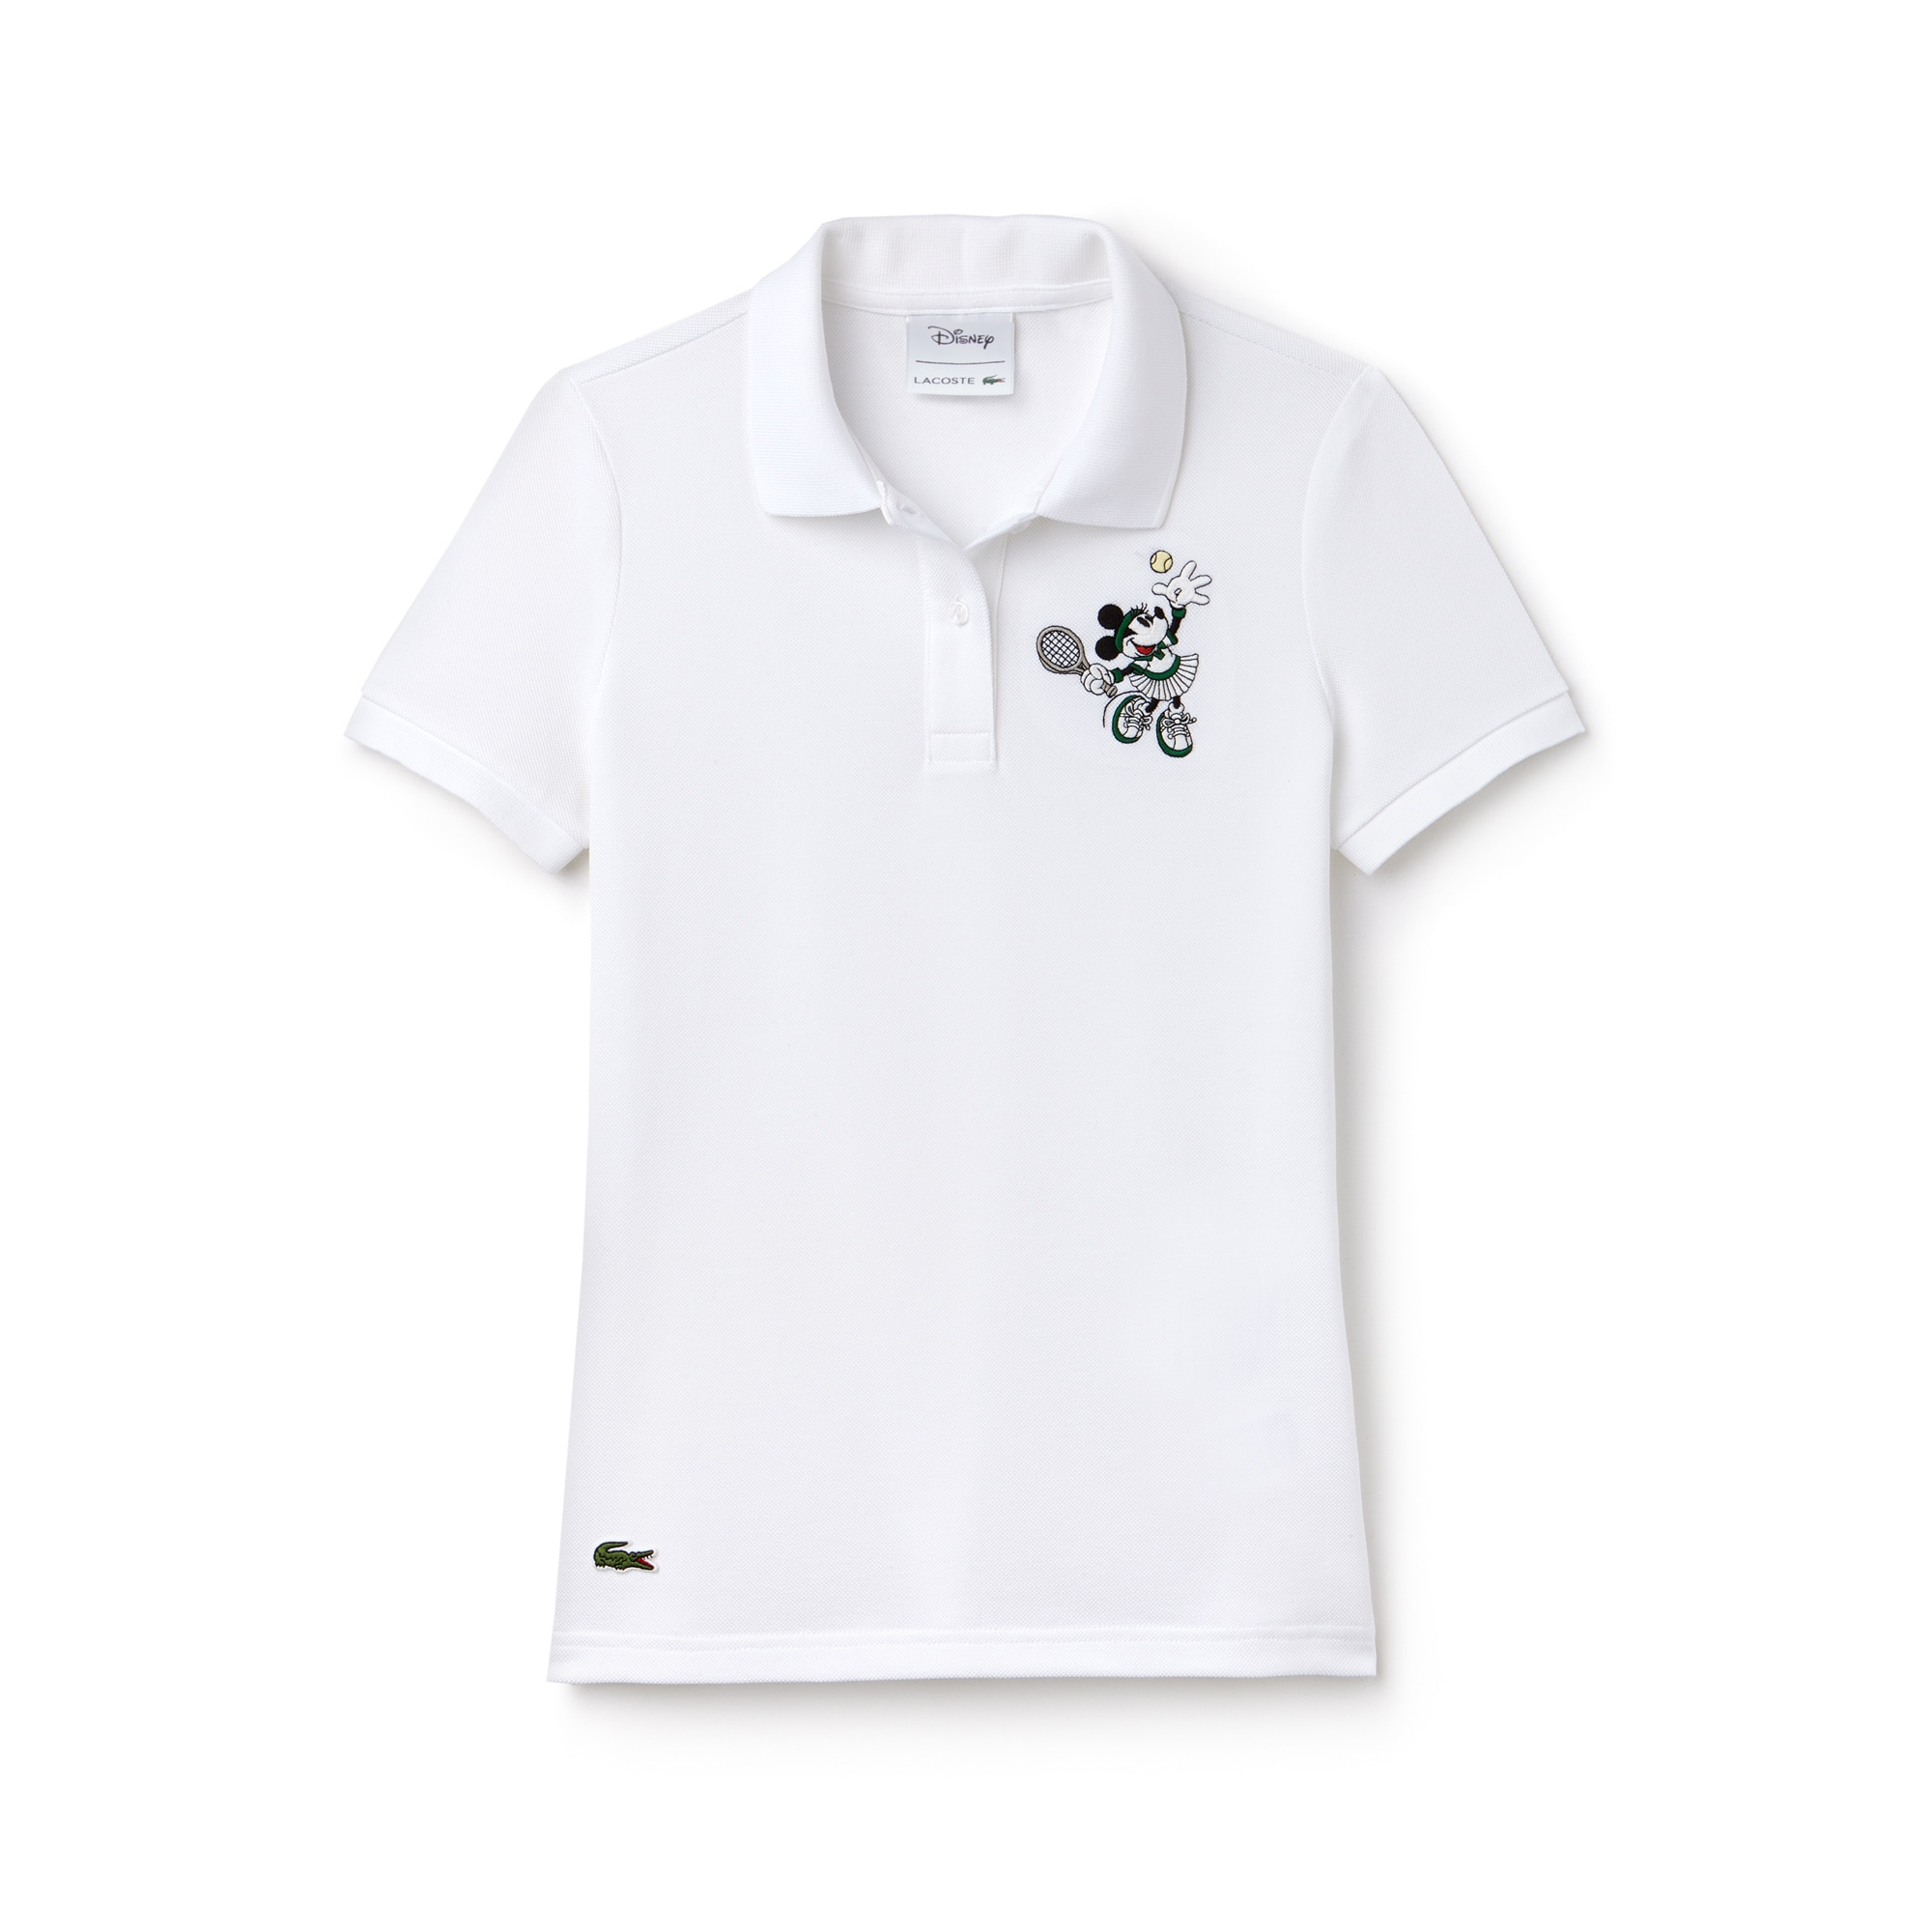 Women's Lacoste Disney Minnie Embroidery Petit Piqué Polo